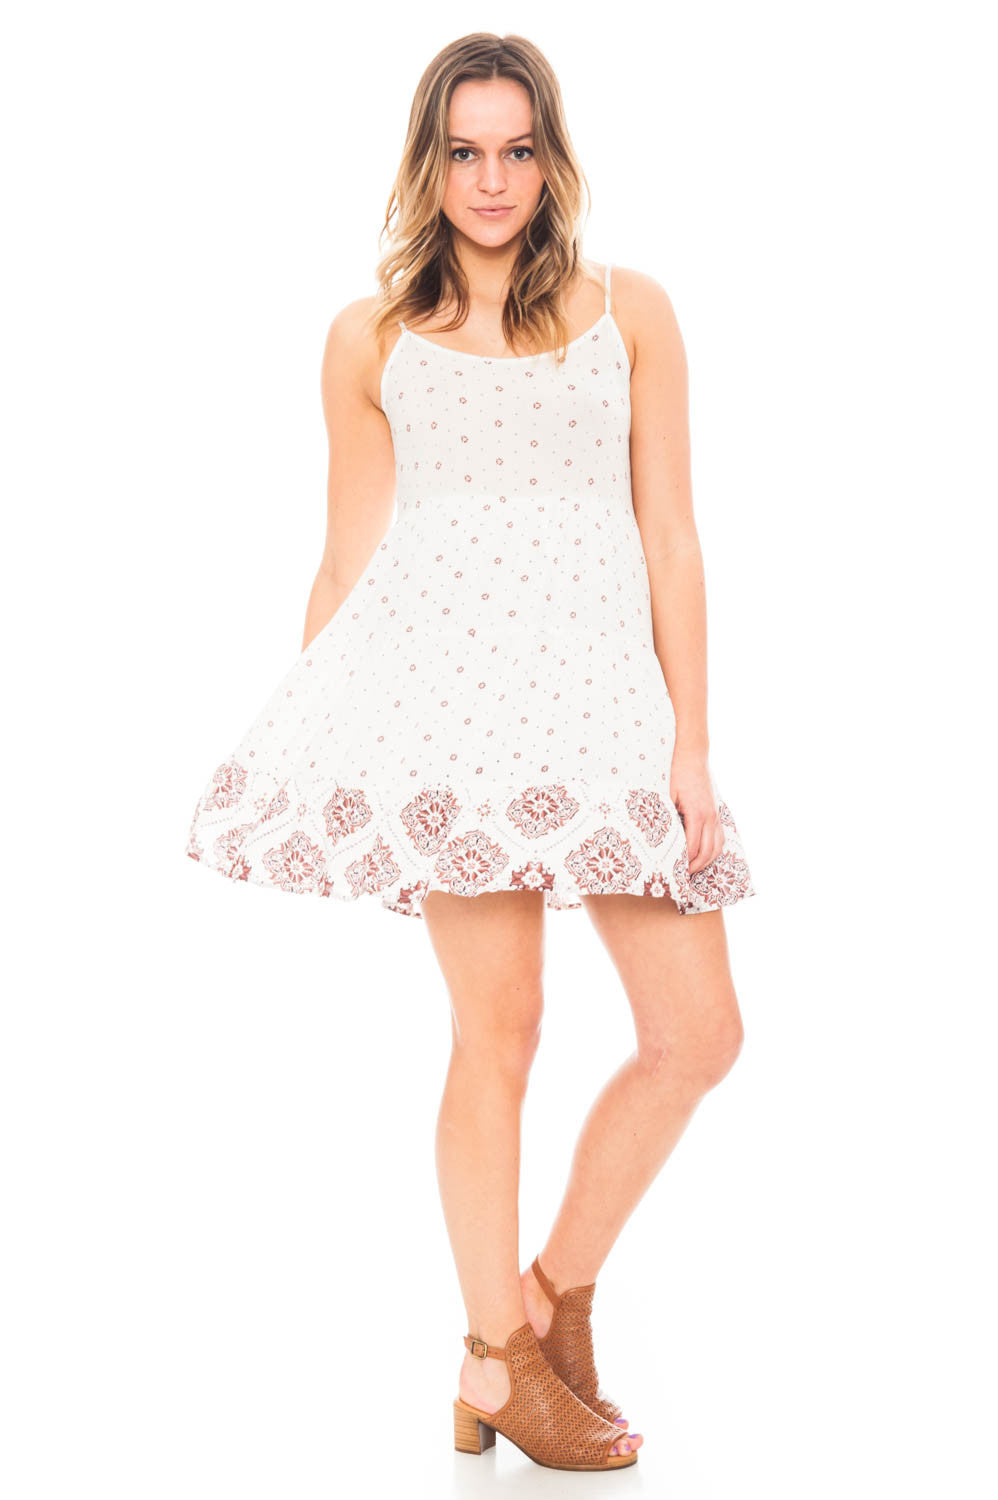 Dress - Printed Tiered Boho dress